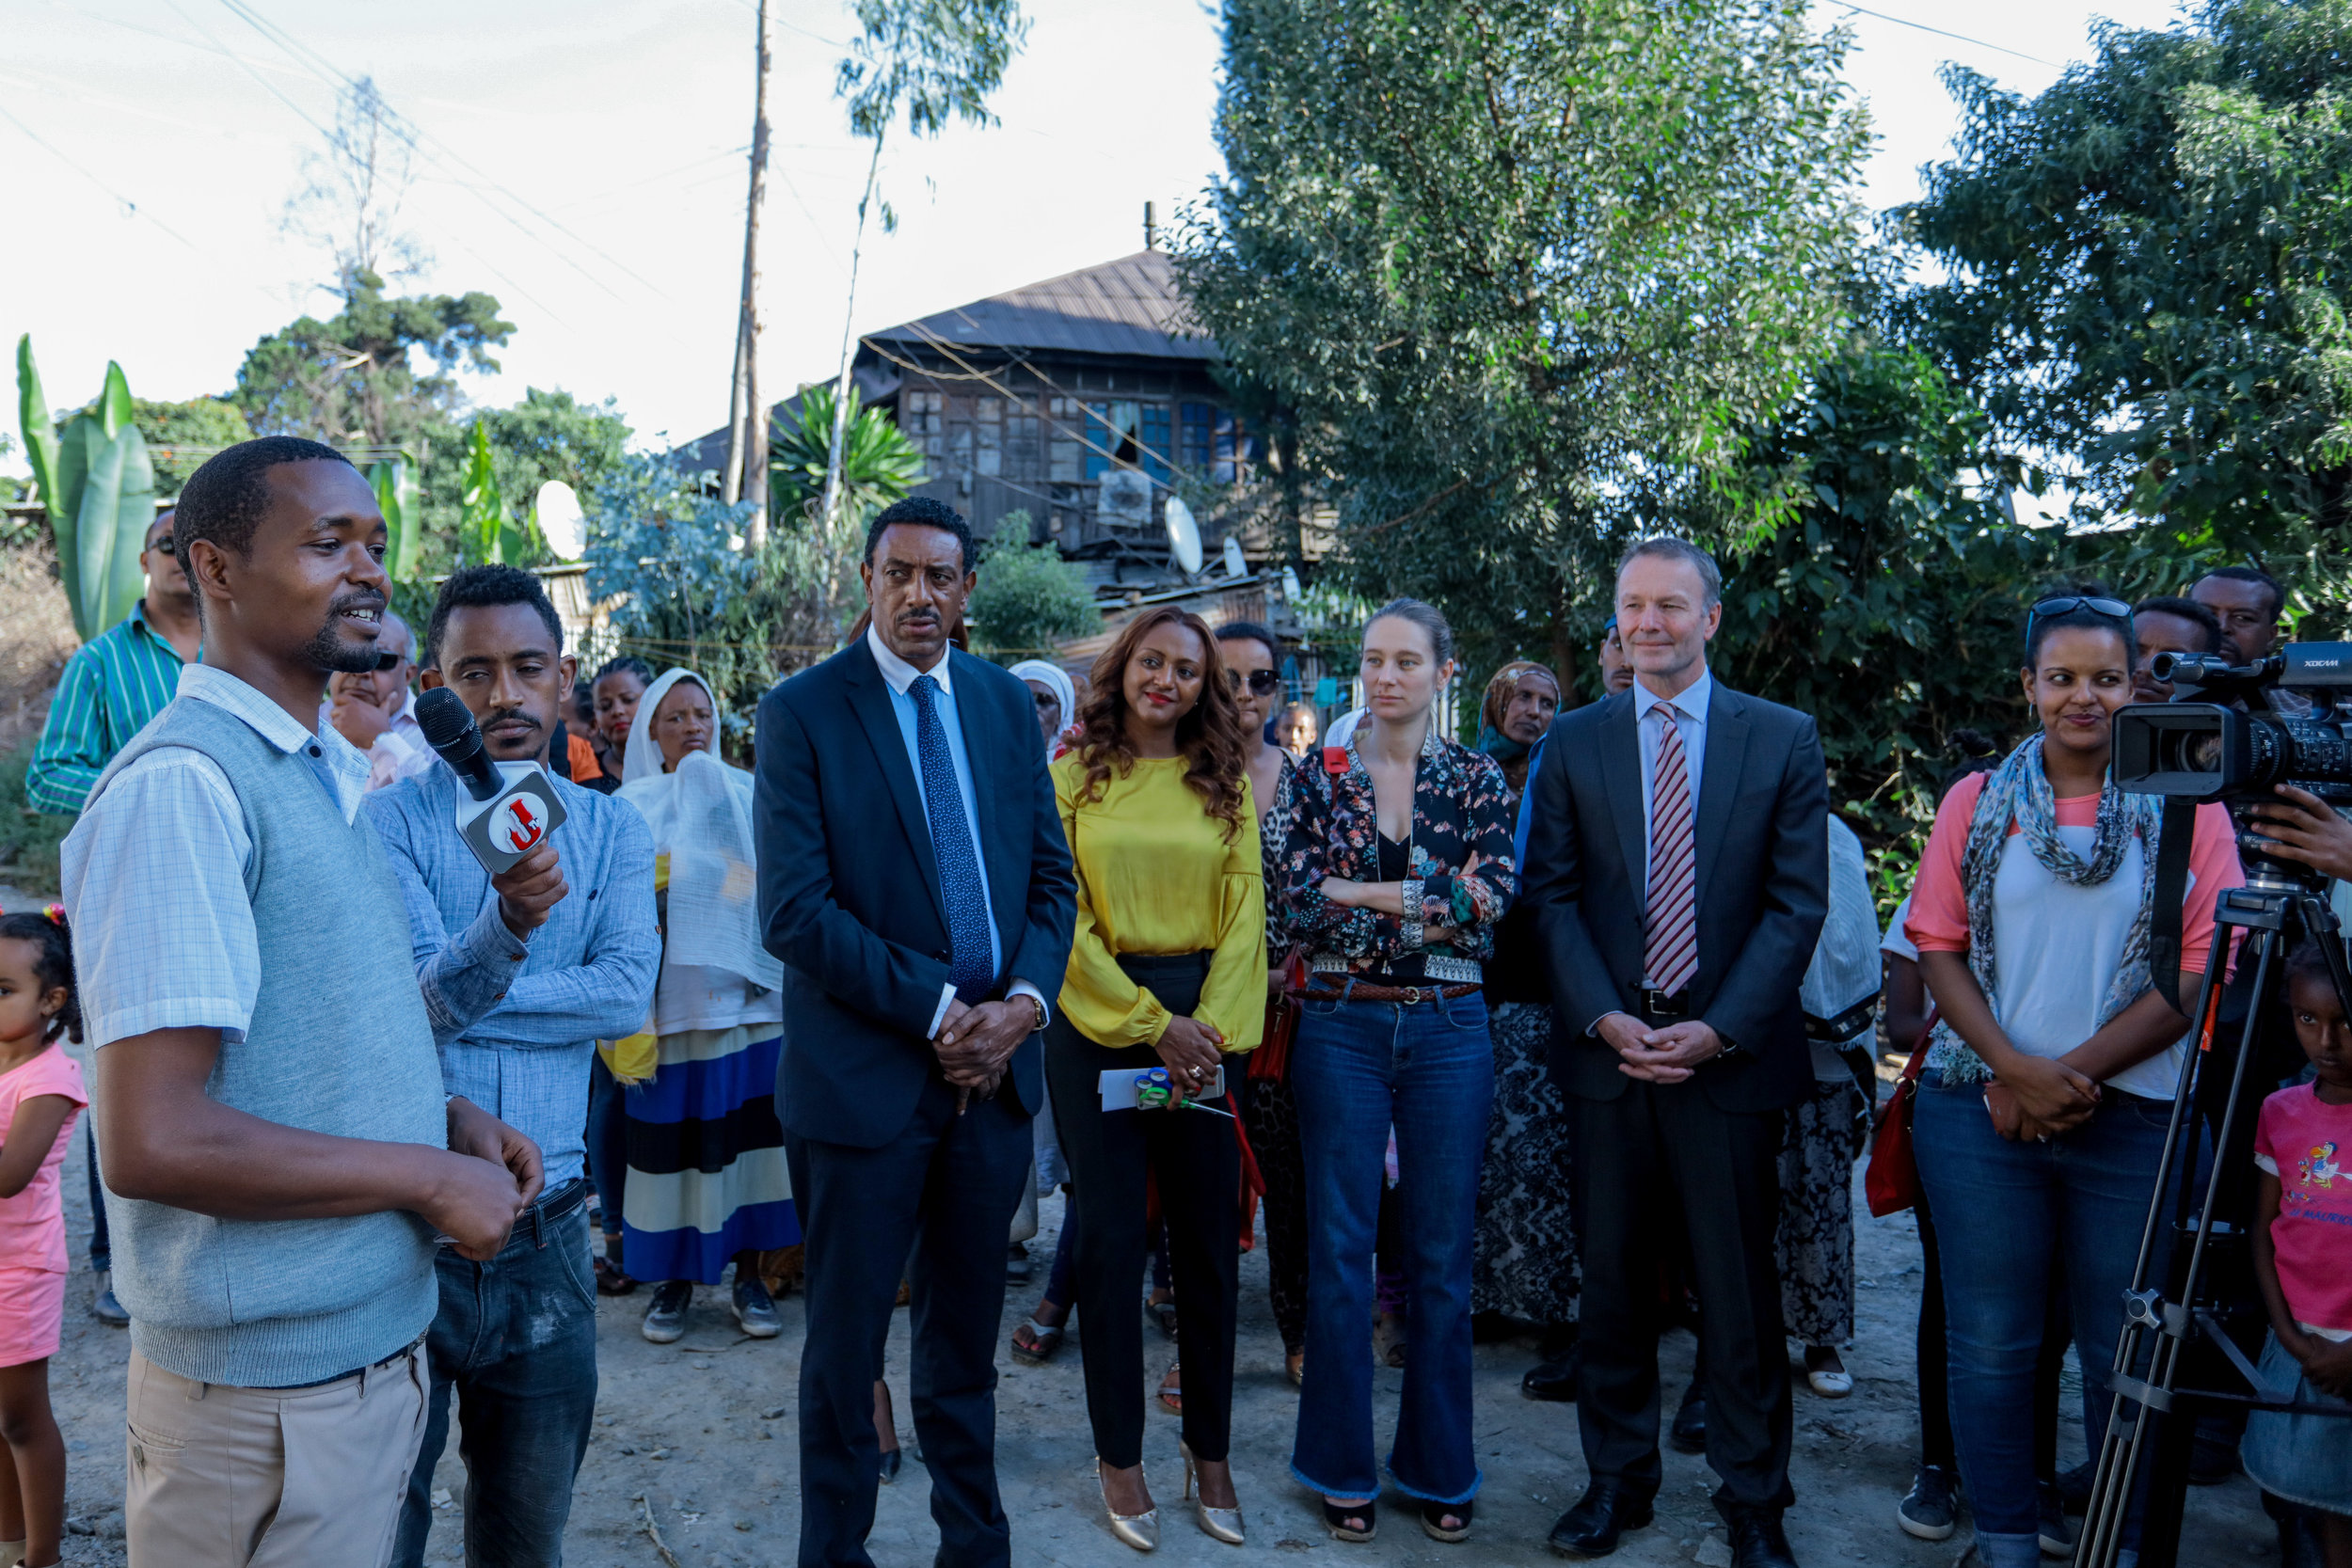 Head of the local administrative office, Ato Alemayehu, expressing his gratitude to BHE and the Australian Embassy In Addis Ababa.  Photo Credit: Mekbib Tadesse